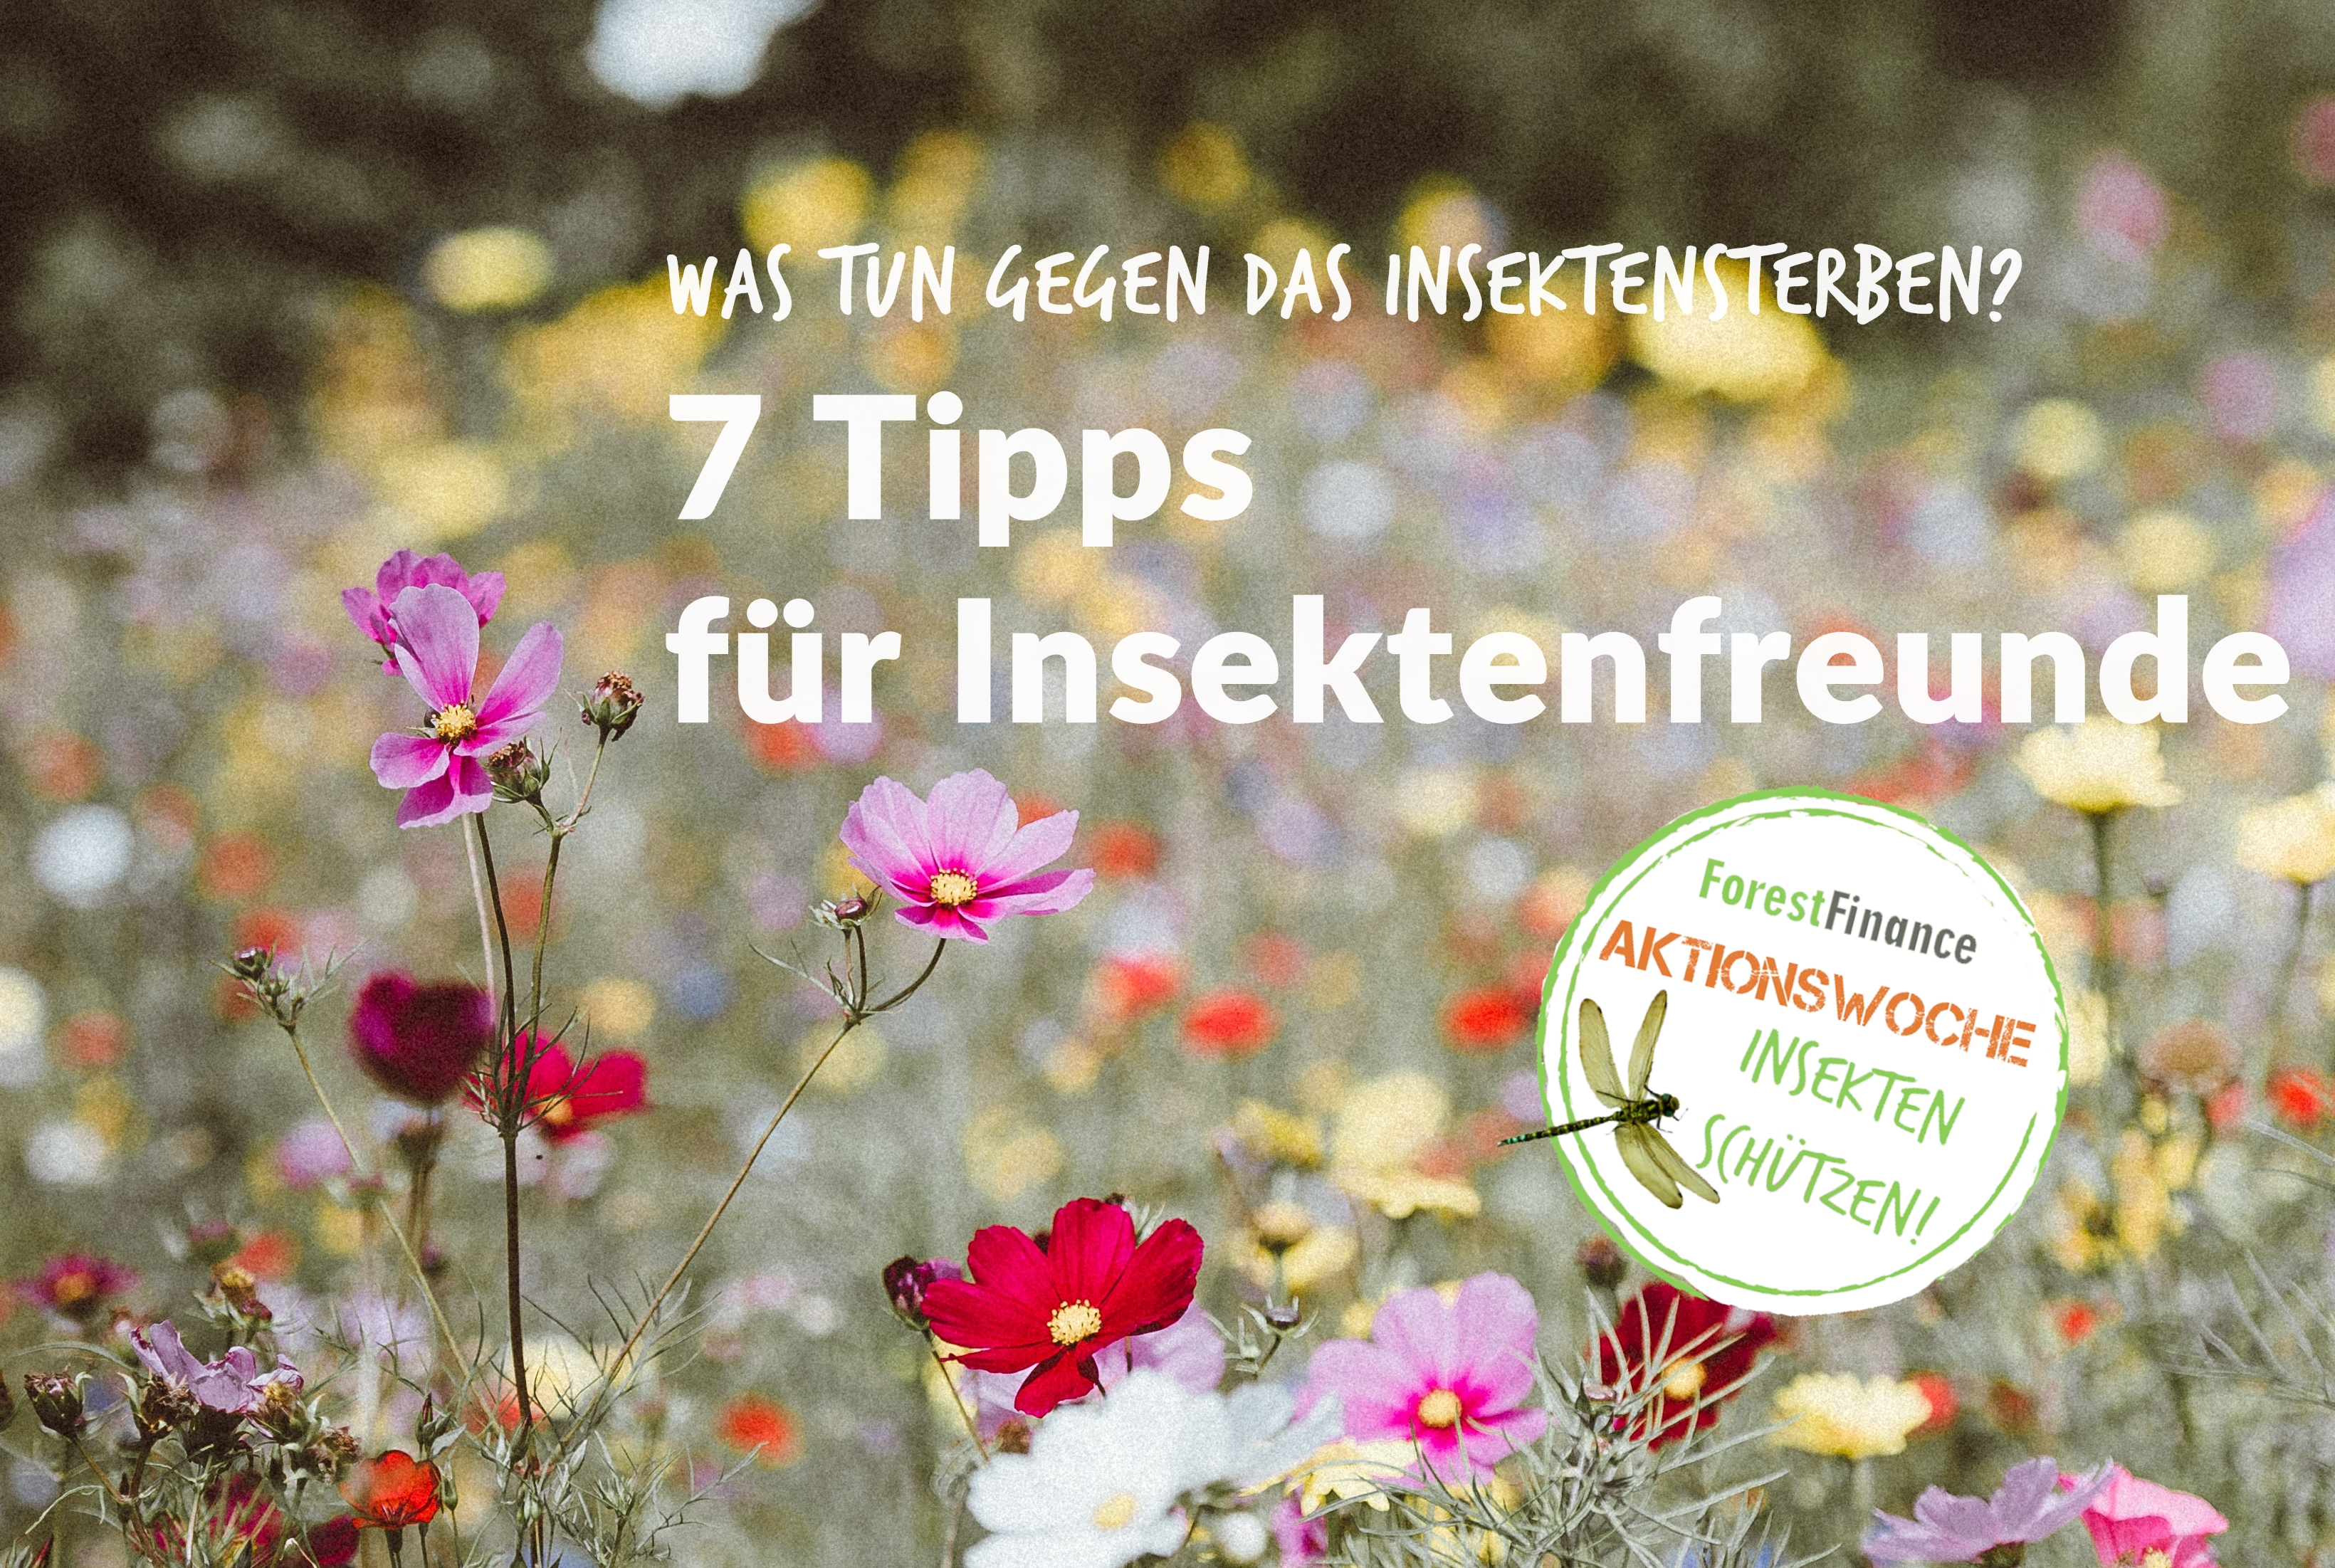 was tun gegen das insektensterben 7 tipps f r insektenfreunde forestfinance blog. Black Bedroom Furniture Sets. Home Design Ideas